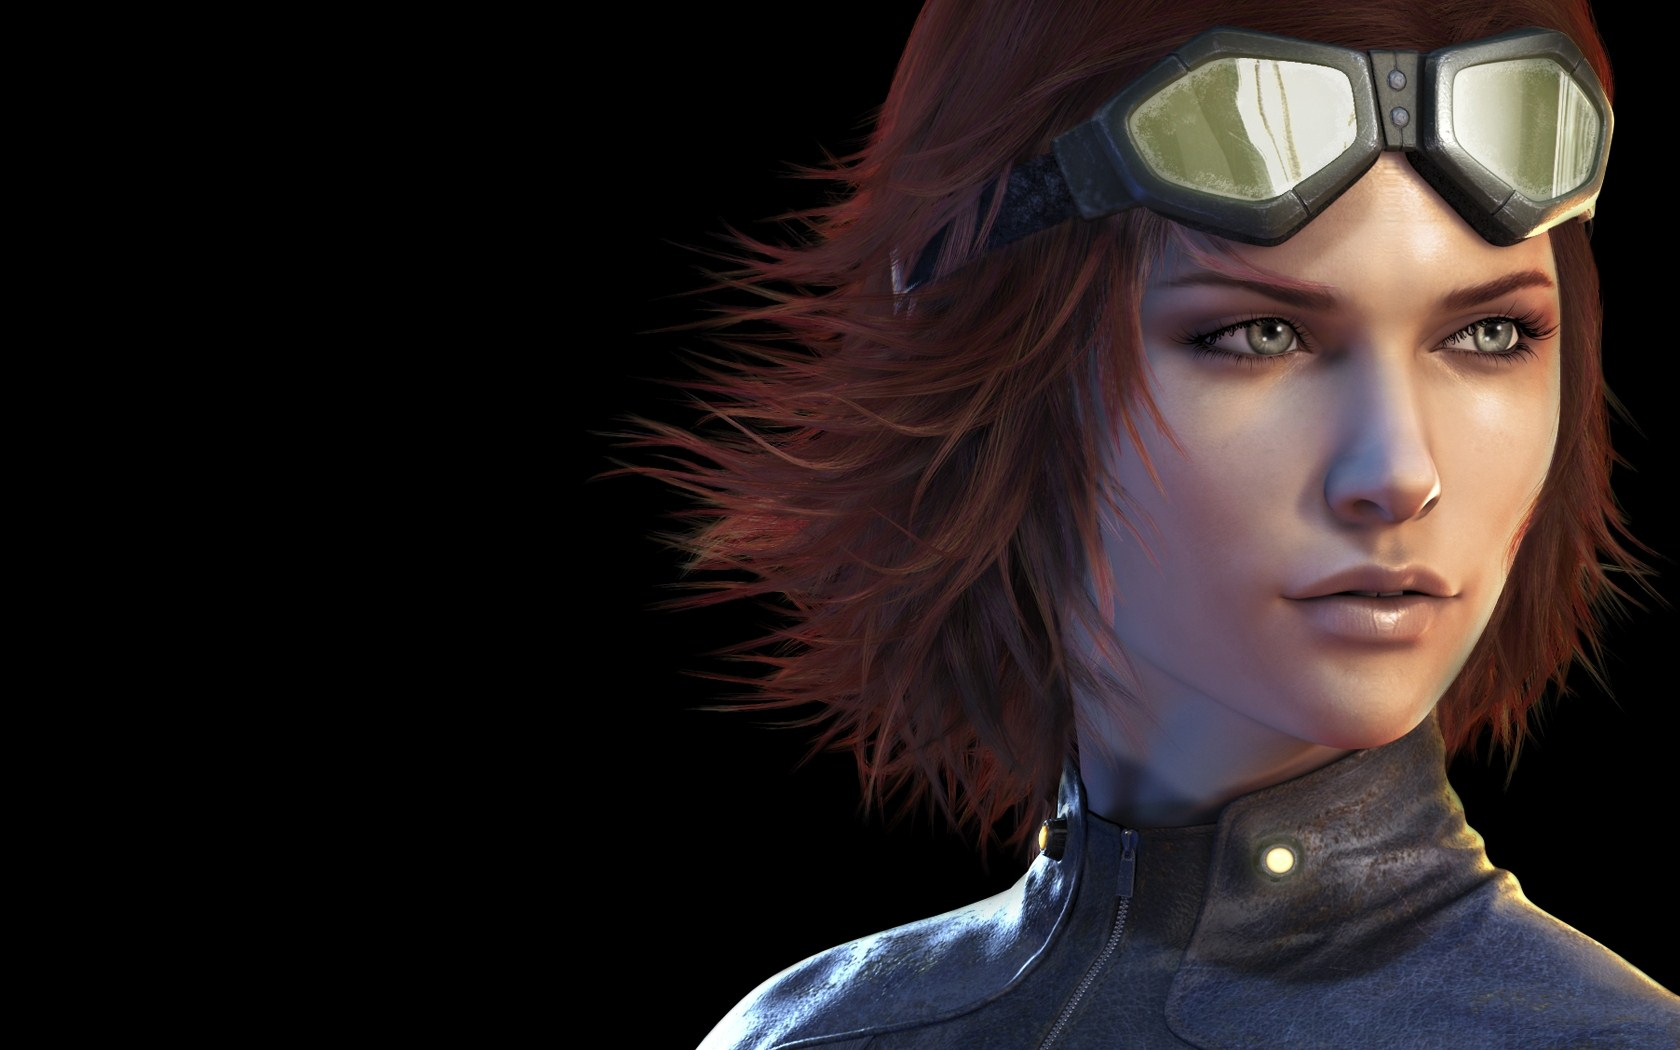 7 perfect dark hd wallpapers background images wallpaper abyss - Wallpaper abyss categories ...